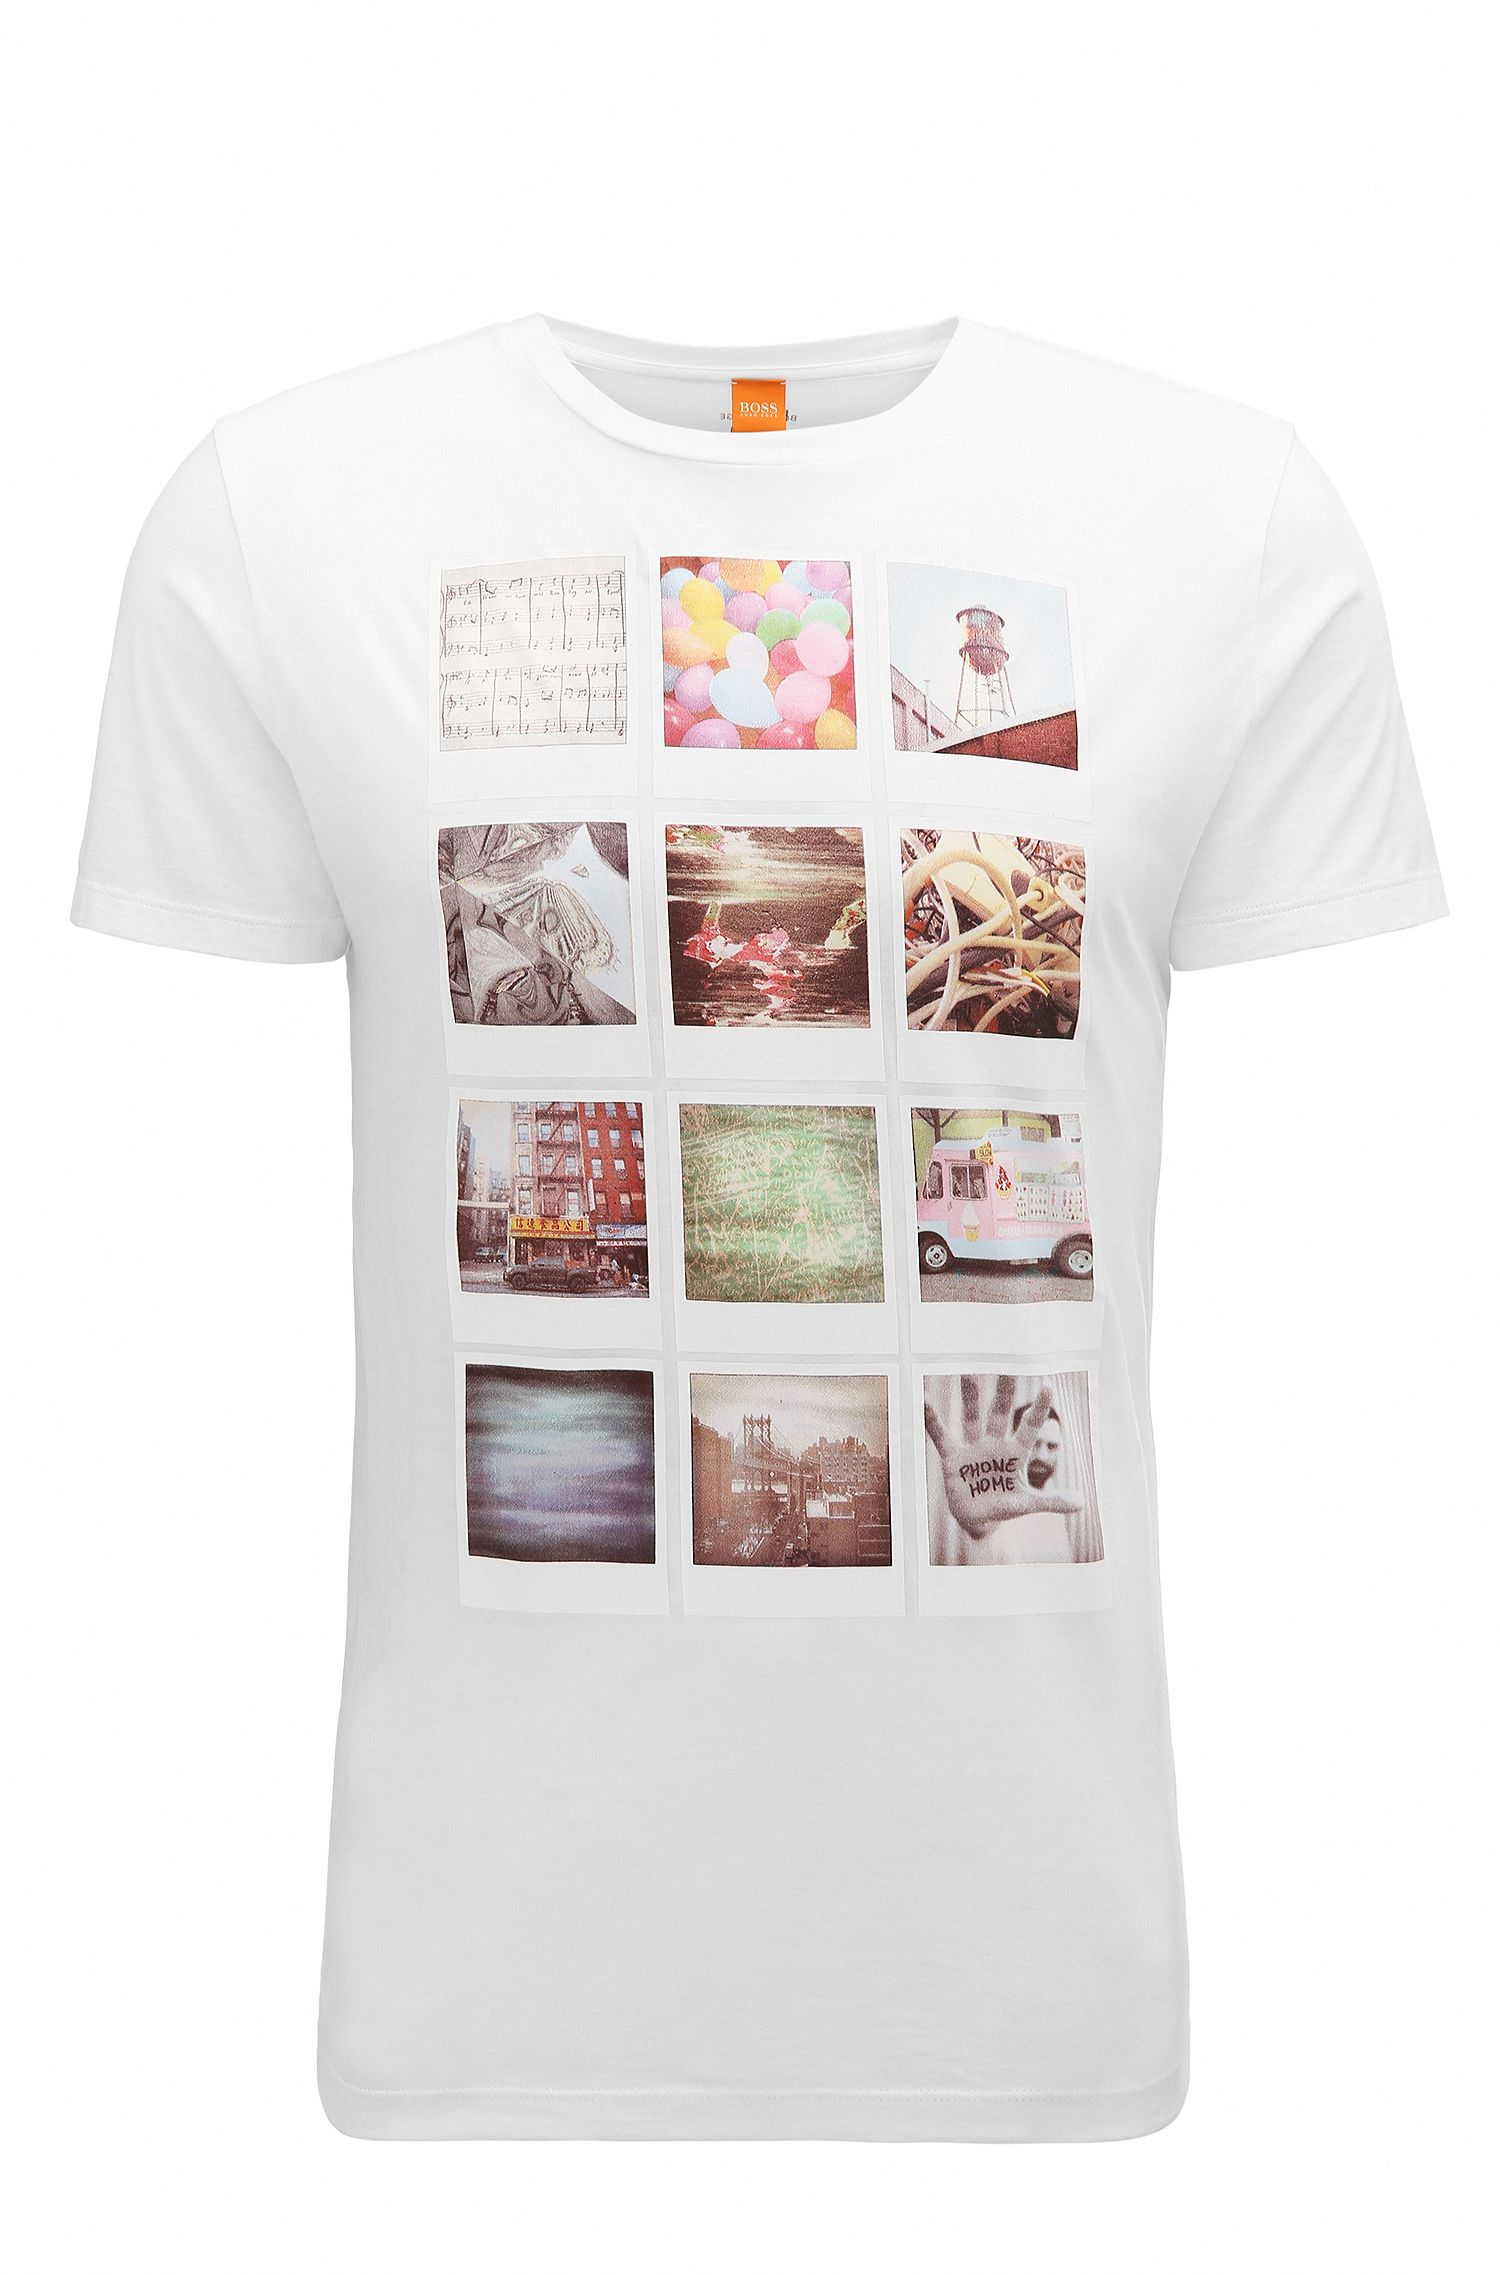 Cotton Graphic T-Shirt   Totally